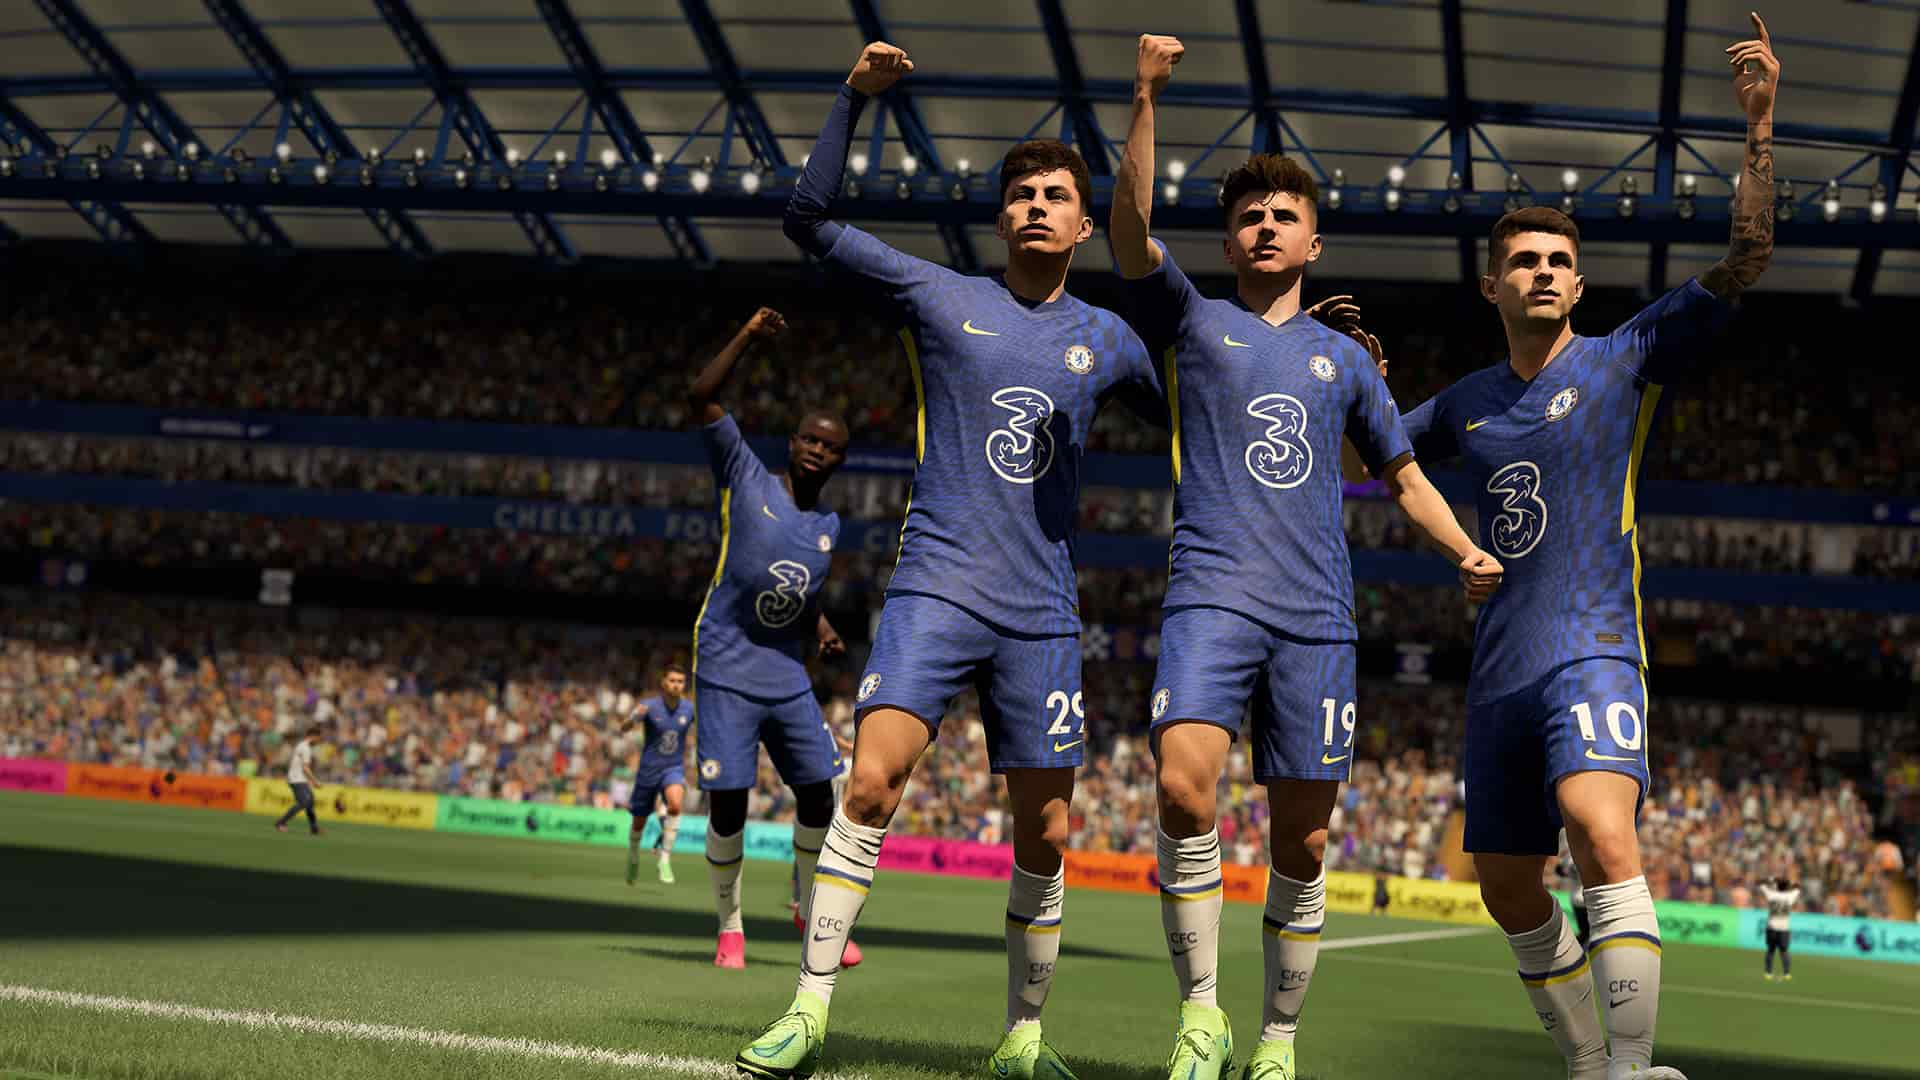 fifa-22-pre-order-content-and-bonuses-missing-2021